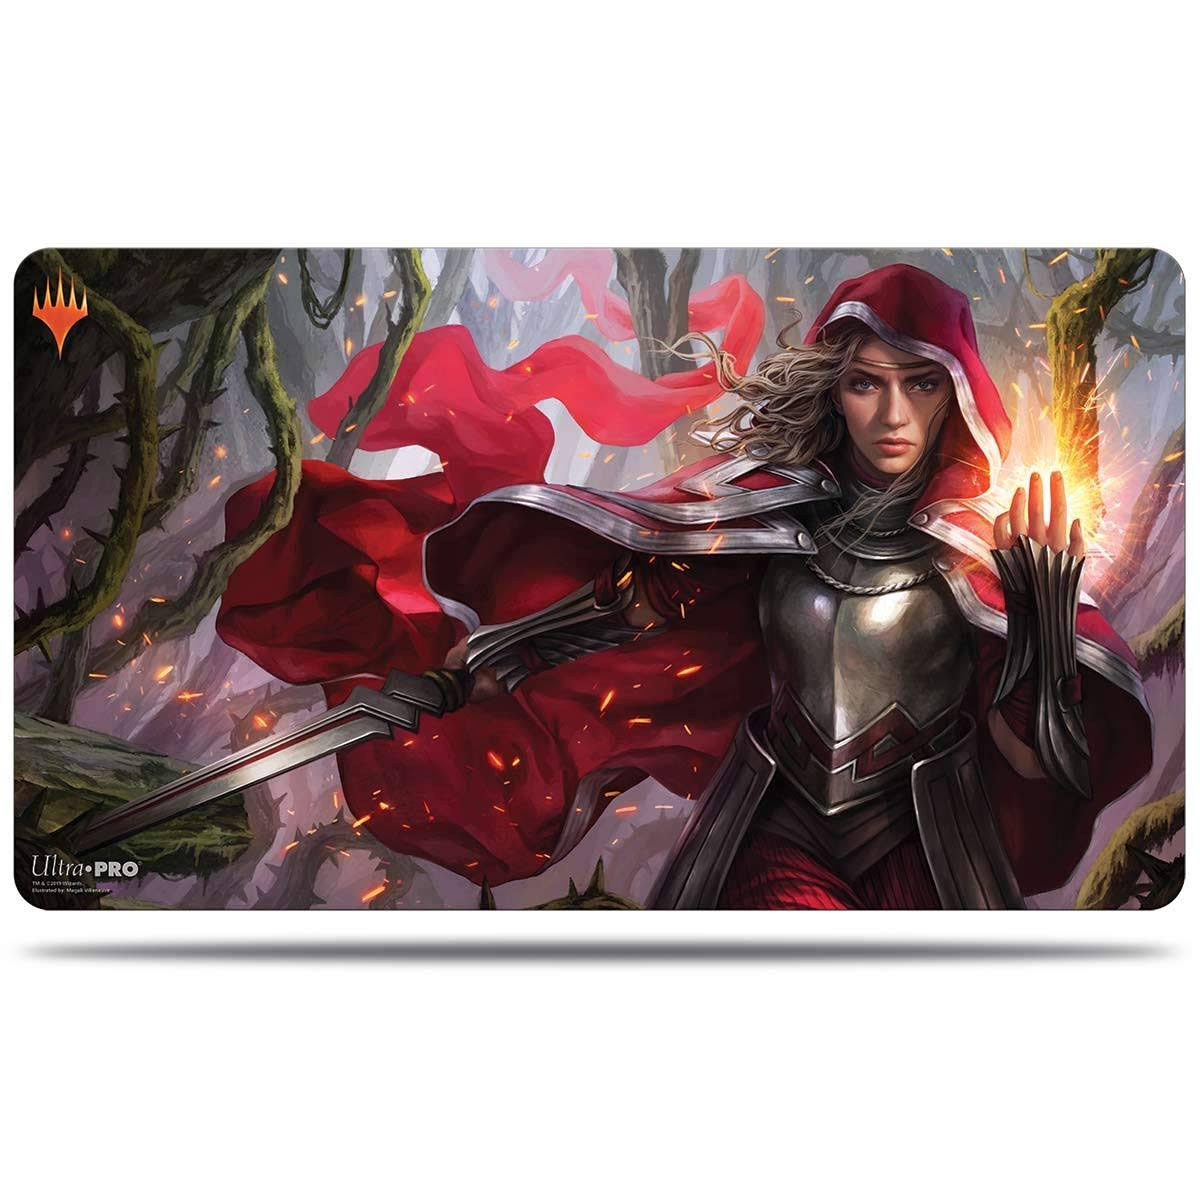 Ultra Pro Playmat: Throne of Eldraine - Rowan